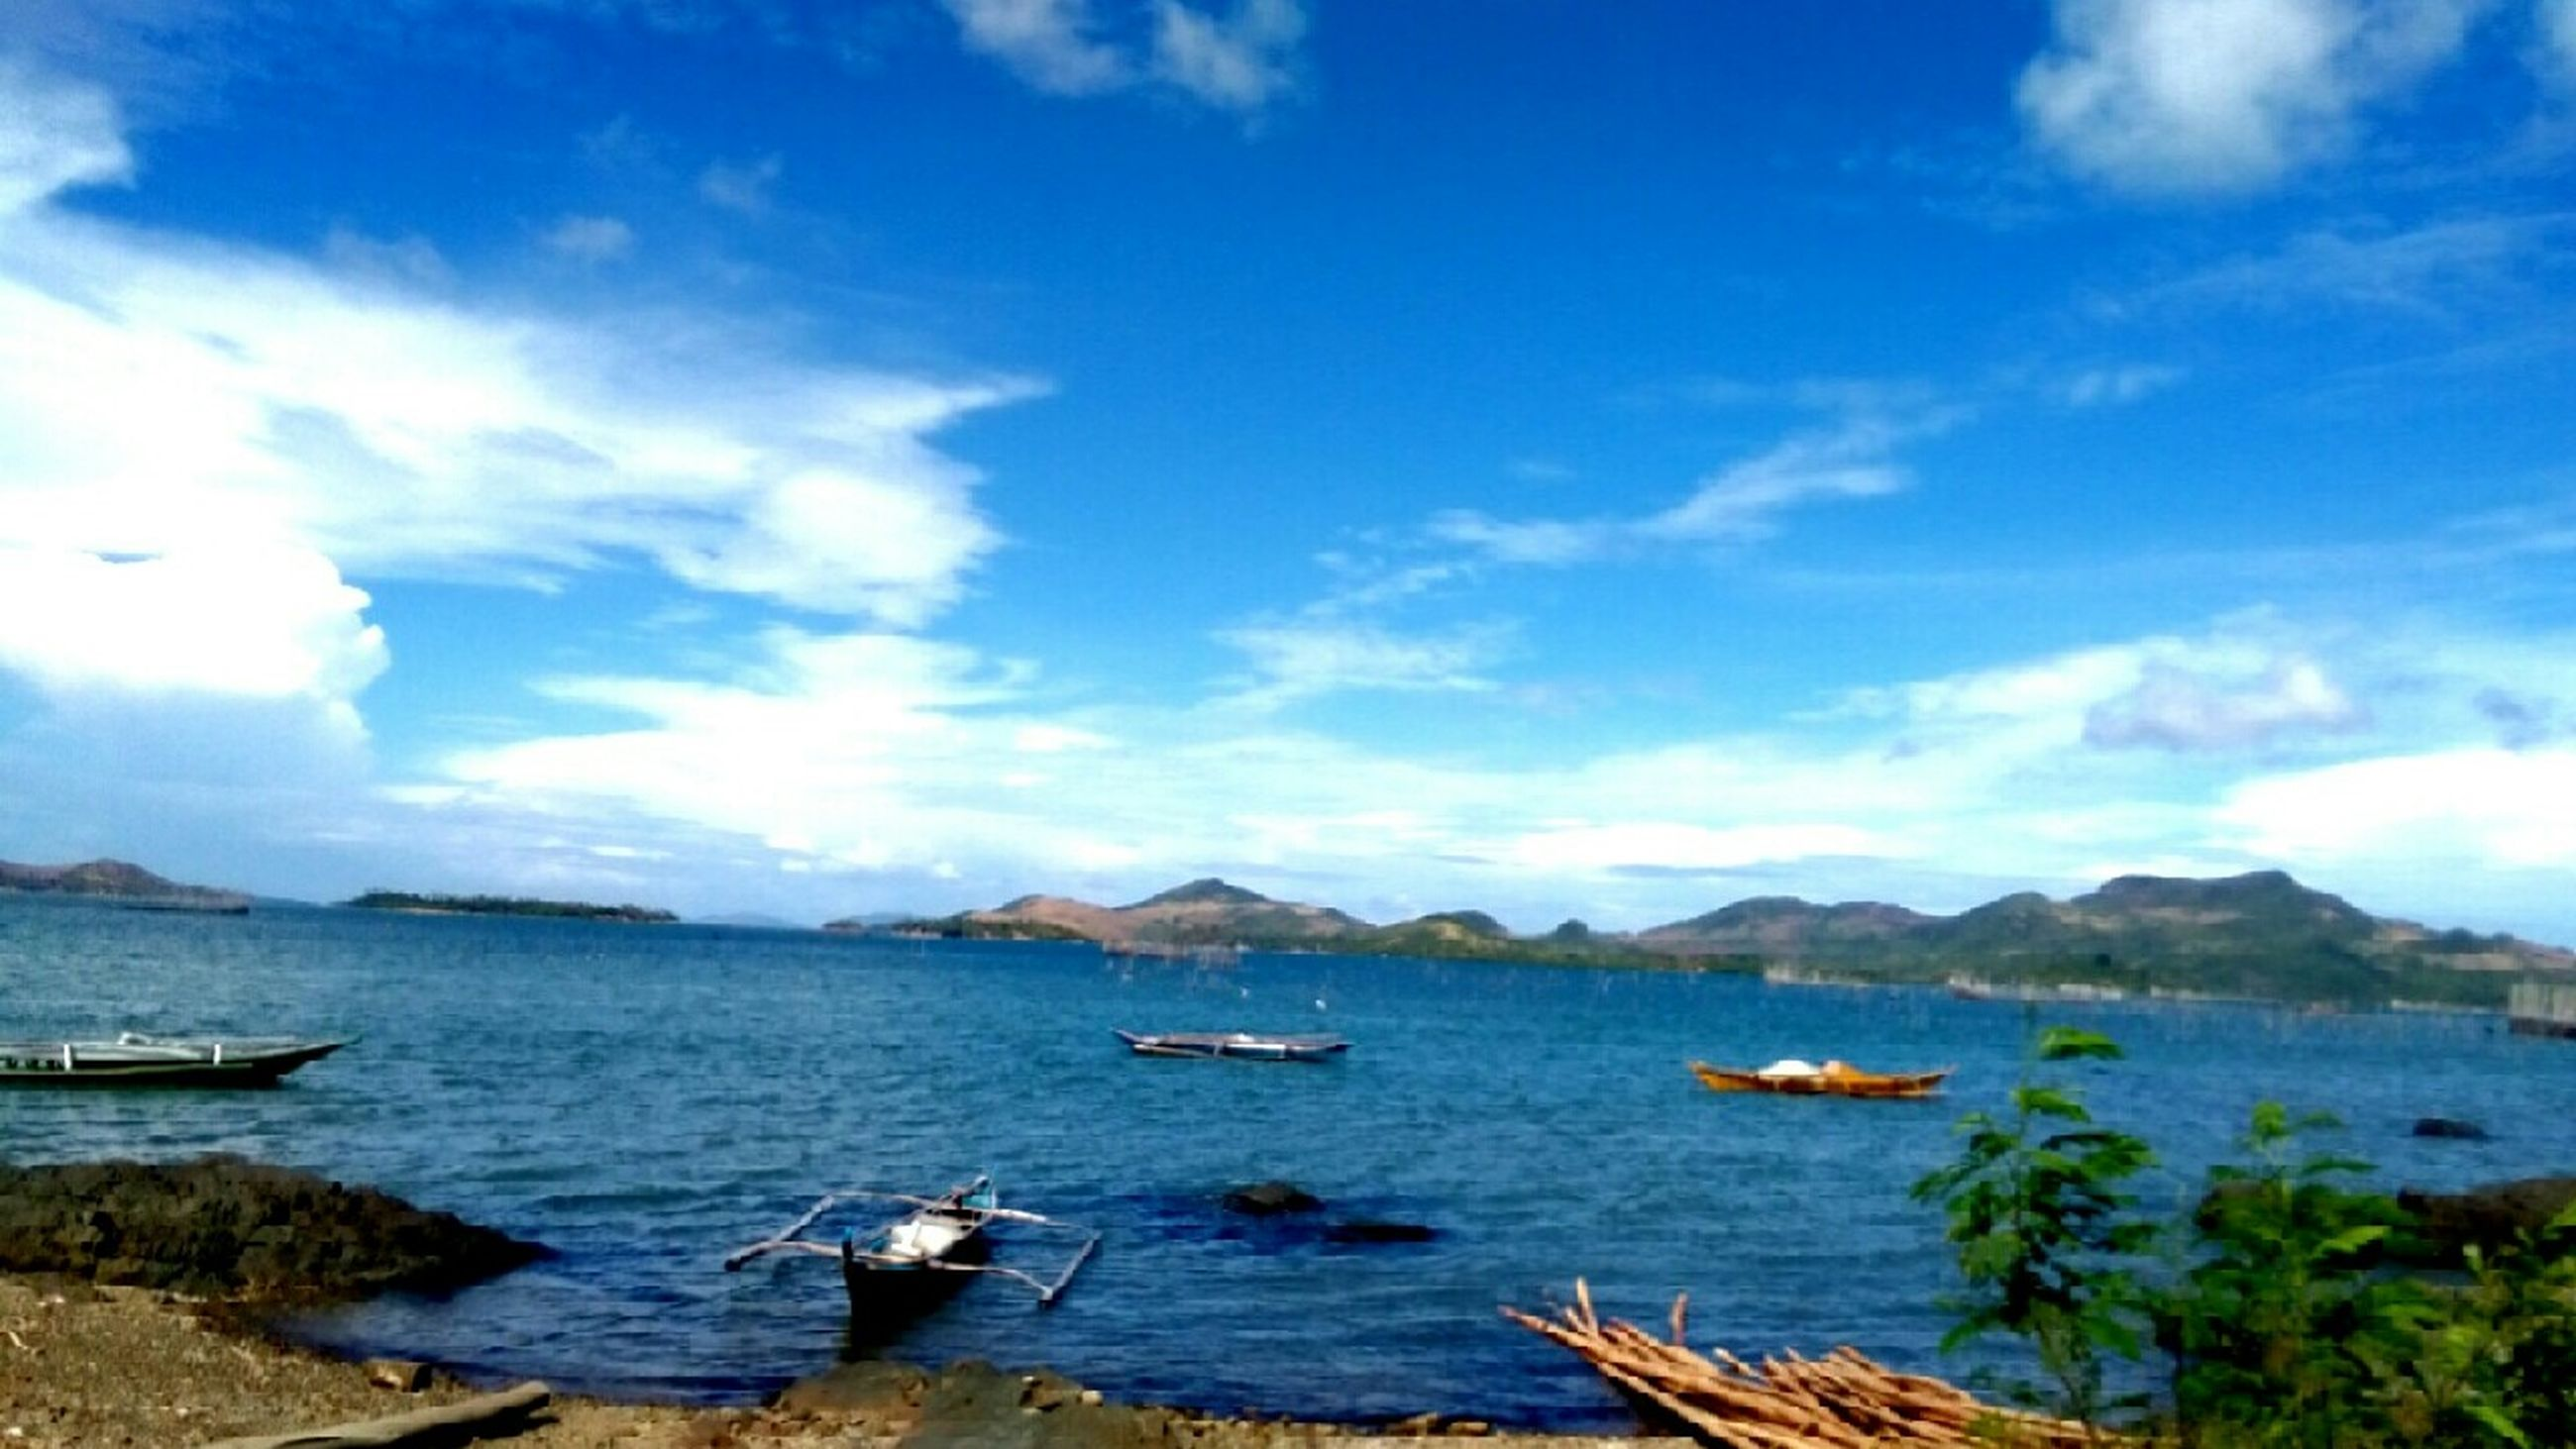 water, sky, tranquil scene, mountain, tranquility, nautical vessel, scenics, blue, beauty in nature, cloud - sky, sea, boat, nature, cloud, transportation, lake, mountain range, mode of transport, idyllic, day